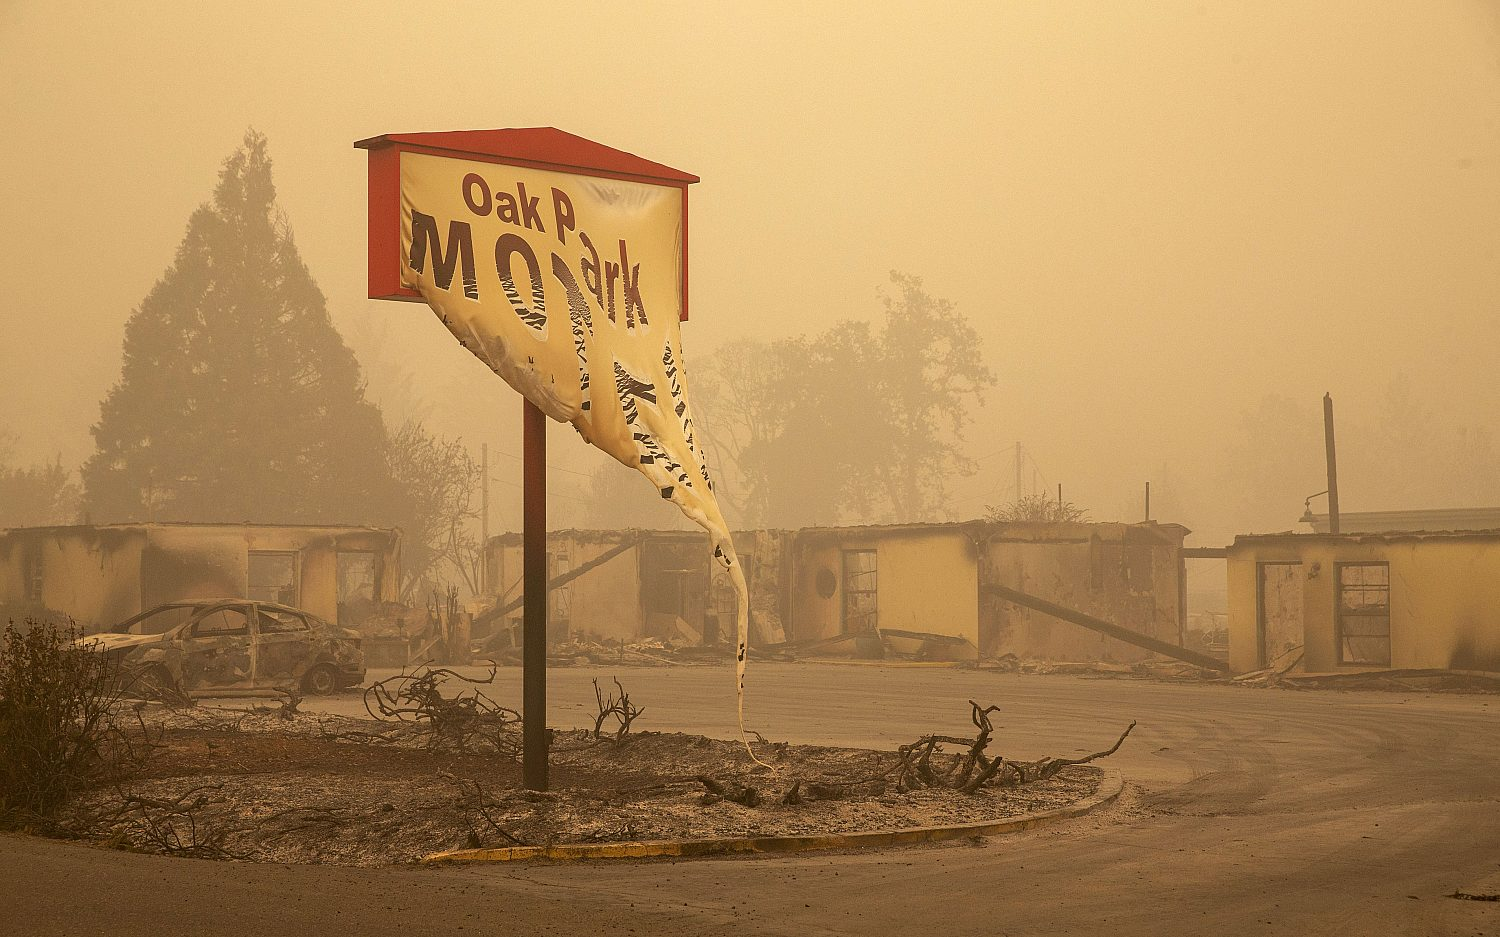 Death toll rises in West Coast wildfires